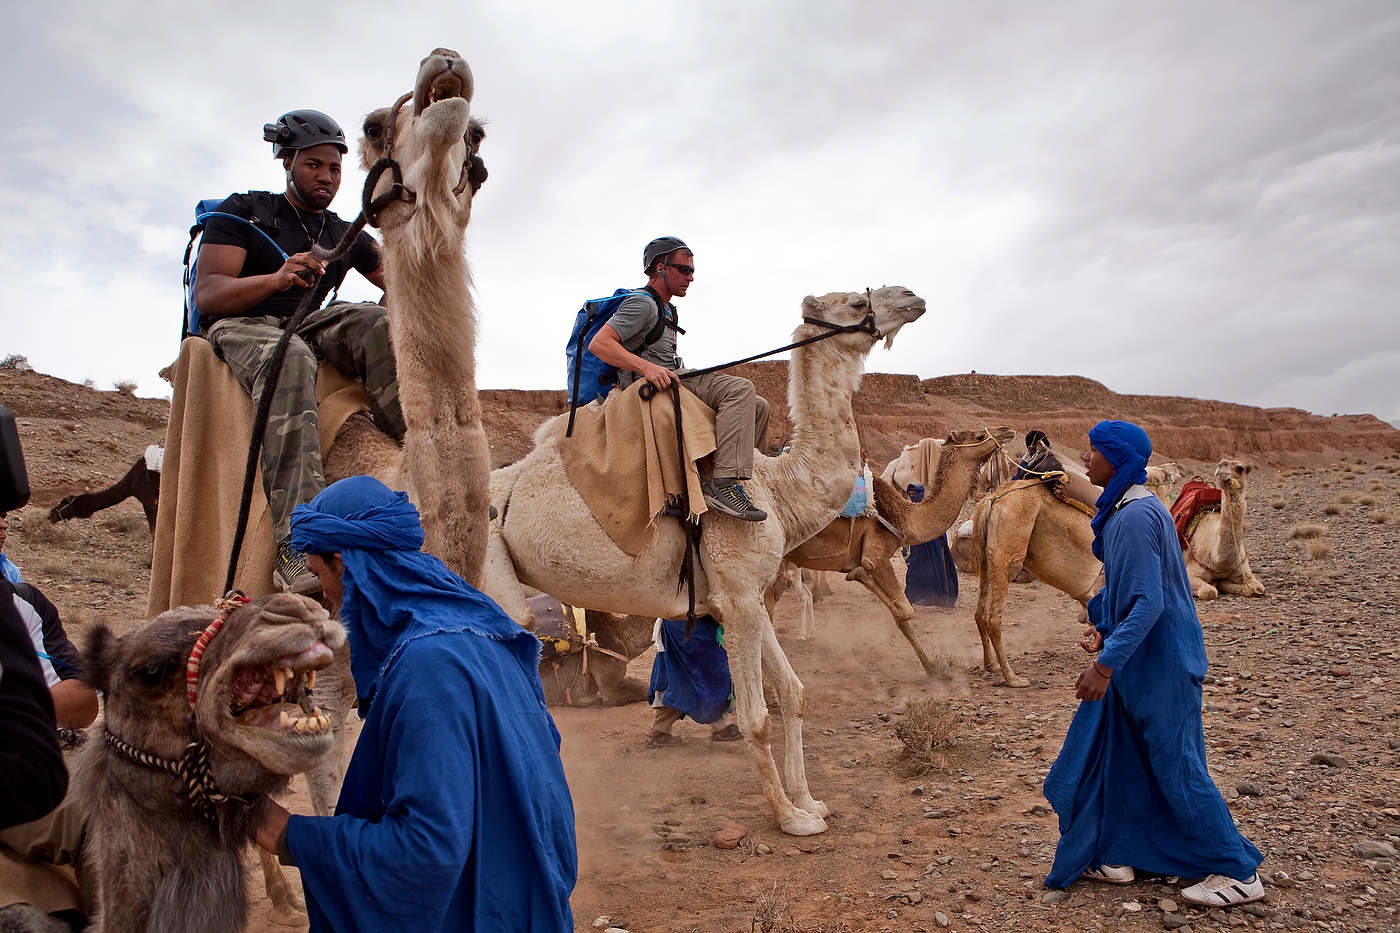 Teams struggle to mount their camels.